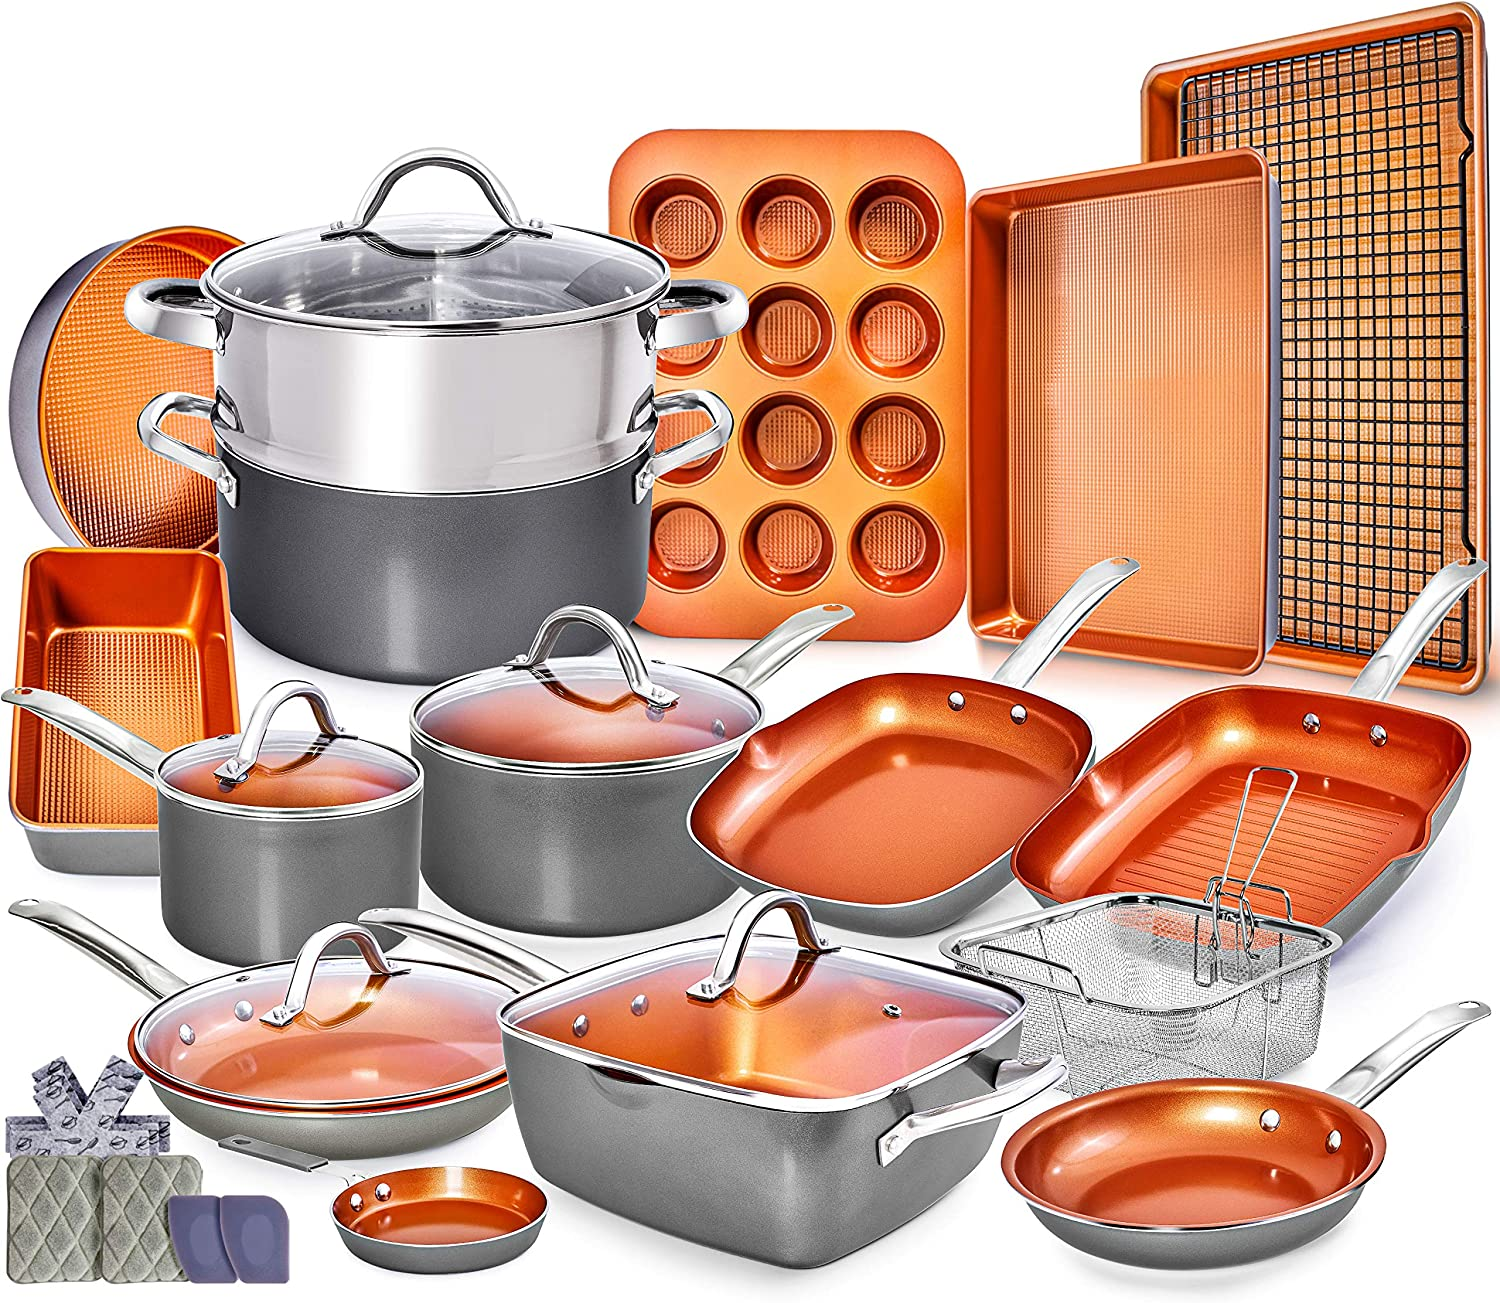 Home Hero 23pc Copper Cookware Set